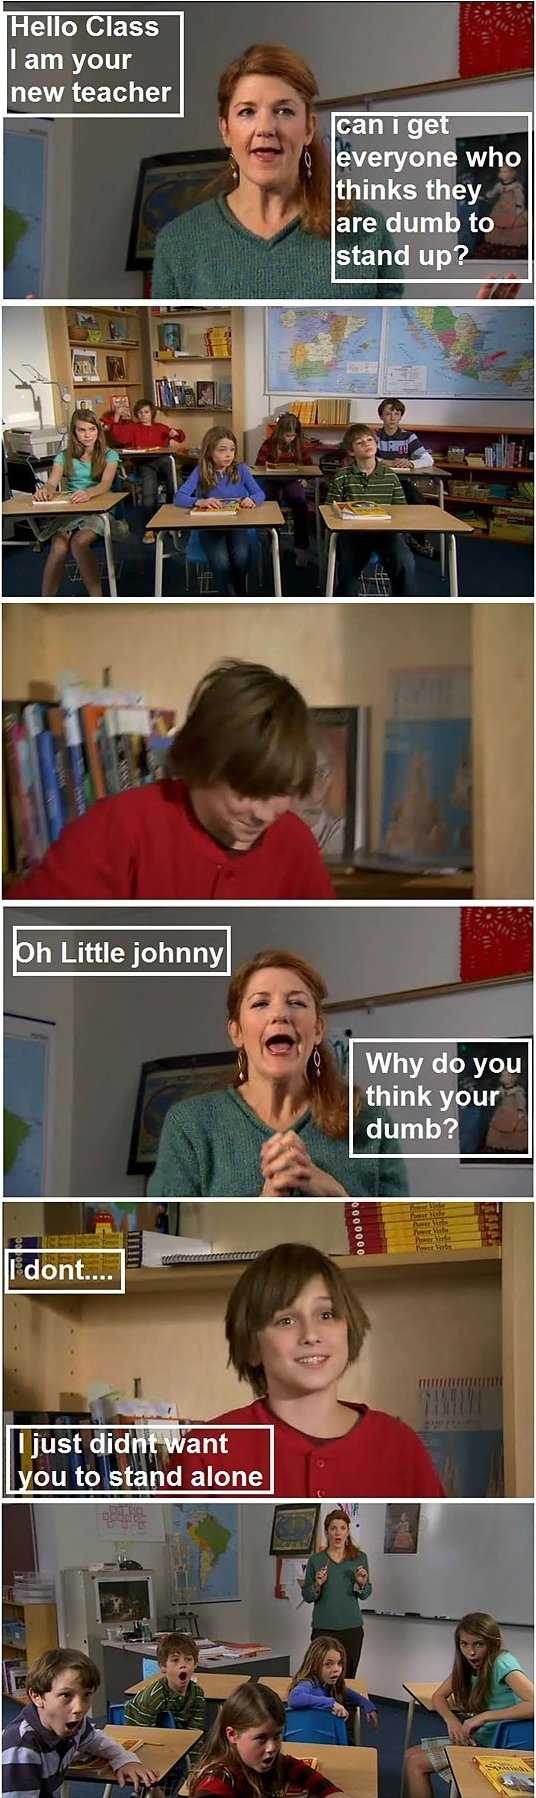 Oh little johnny funny pictures quotes memes funny images funny jokes funny photos